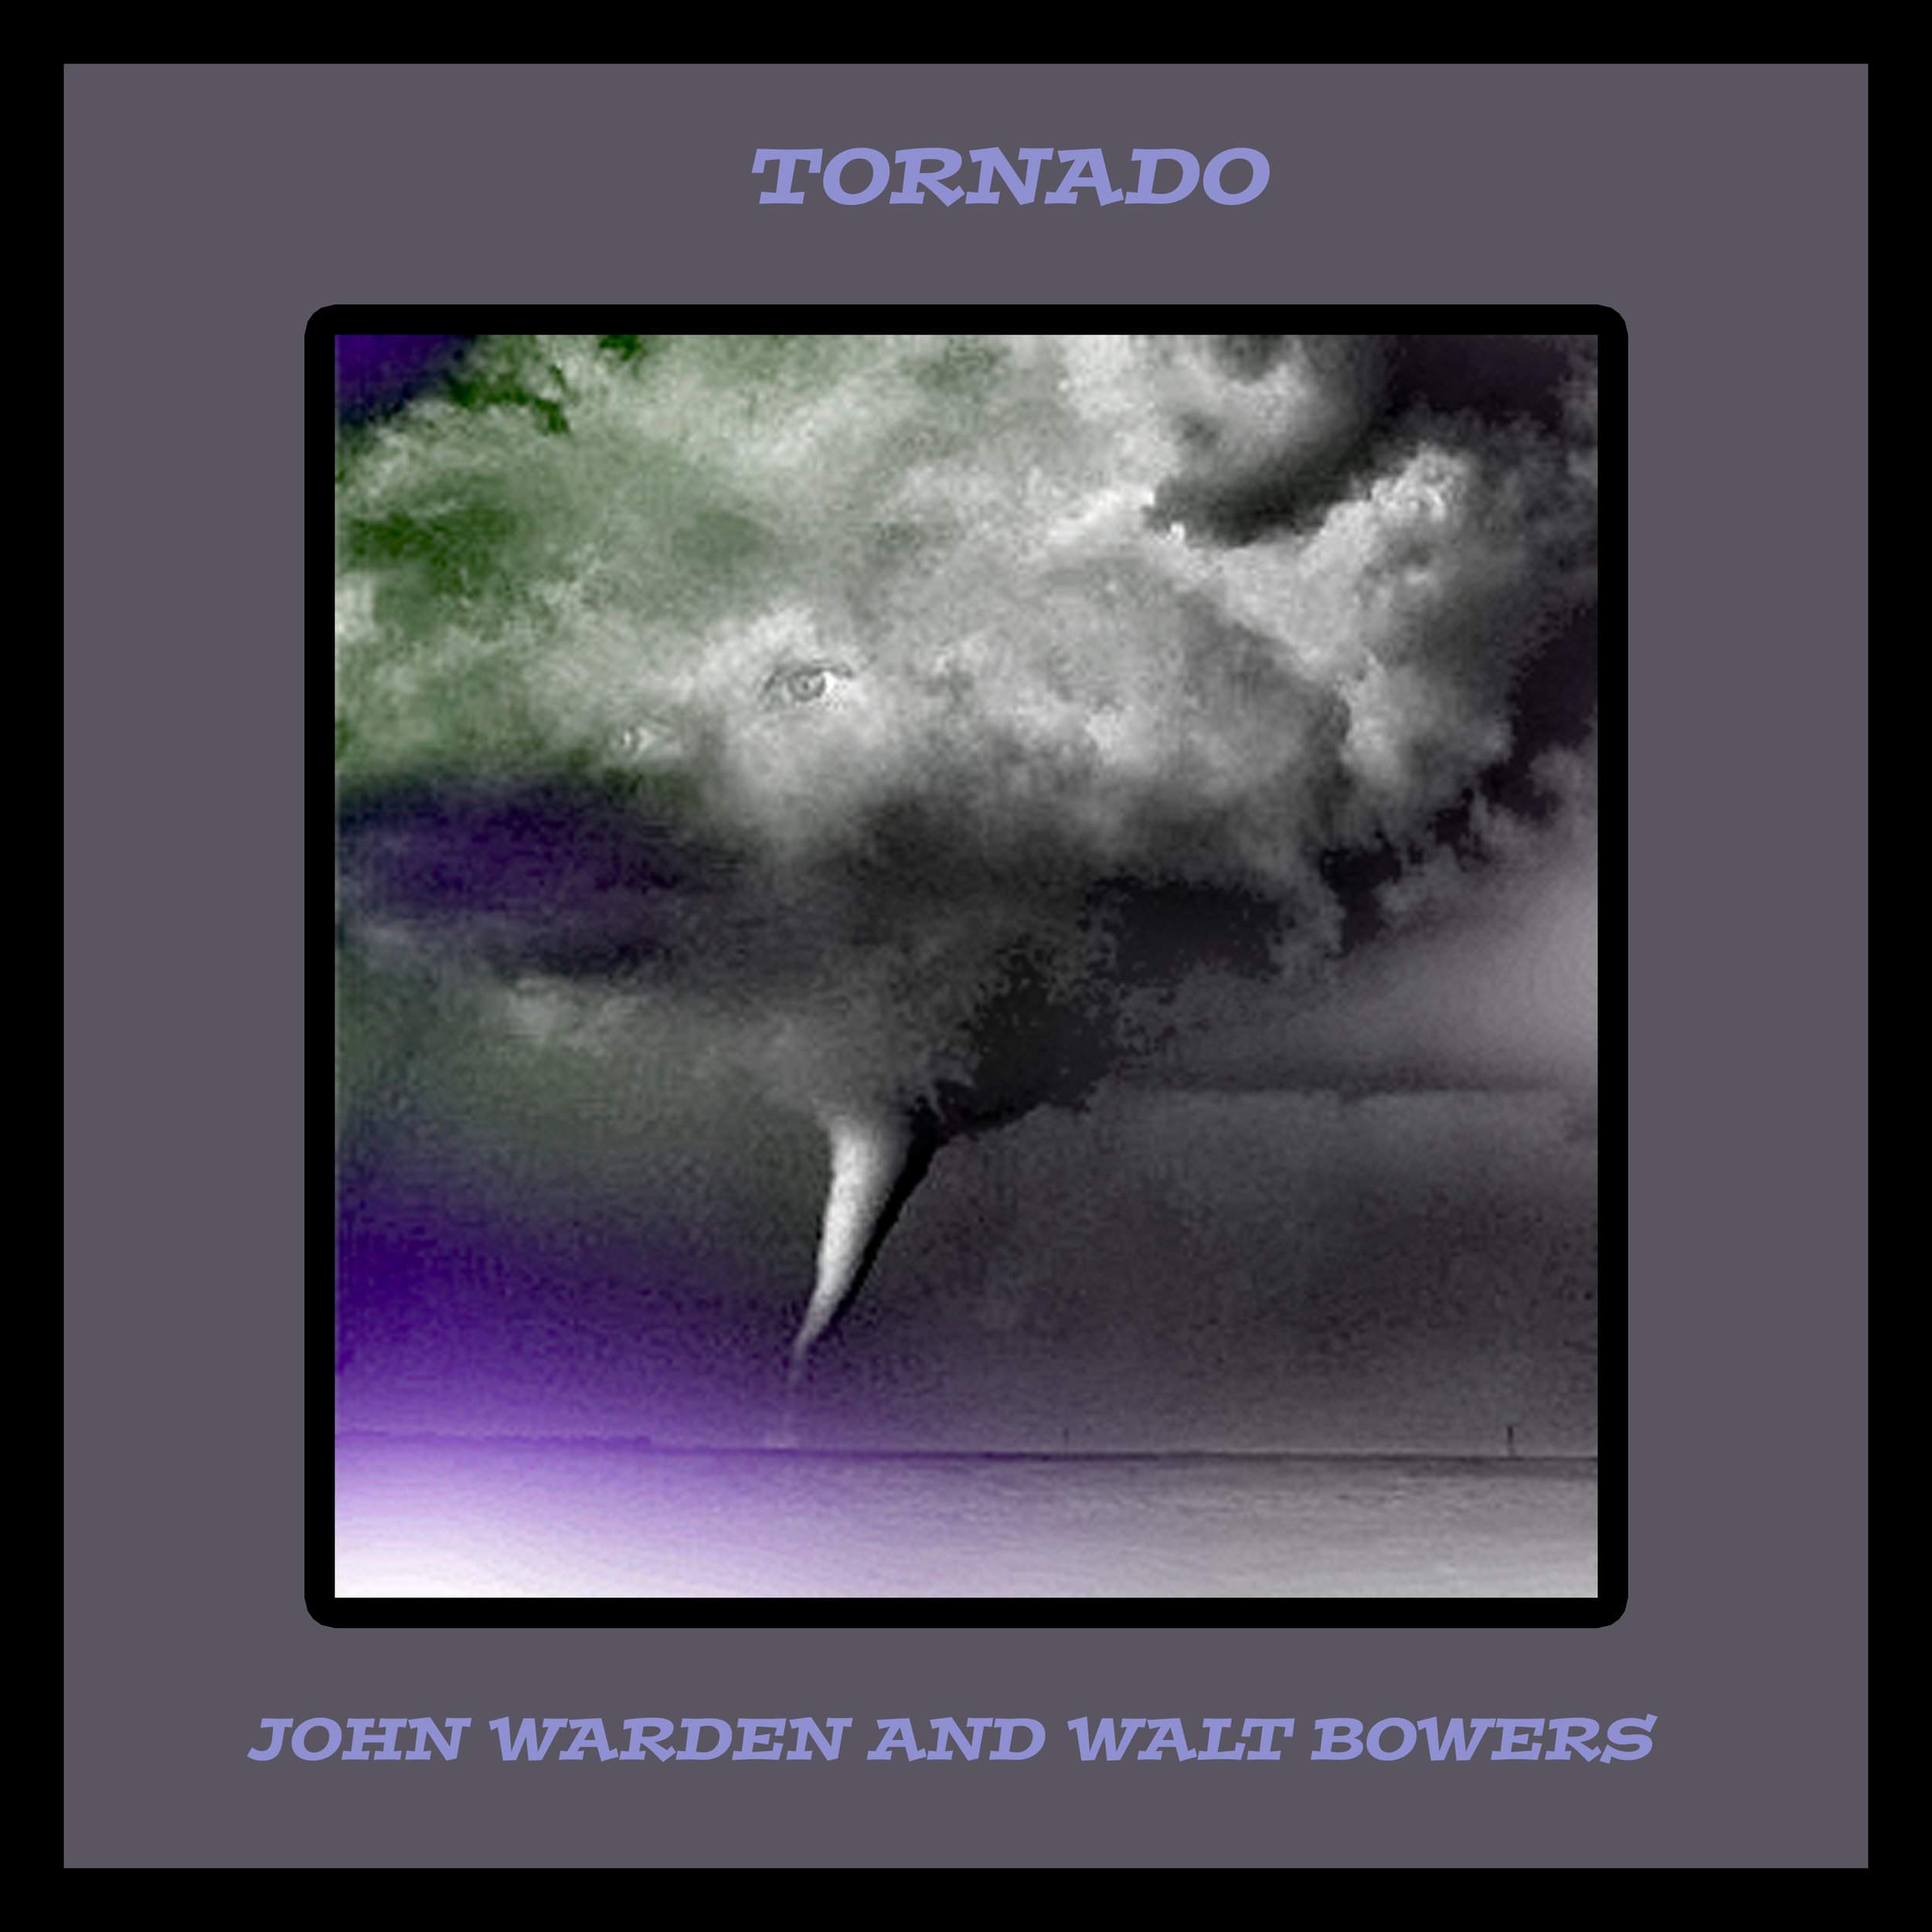 TORNADO COVER WITH TITLES.jpg